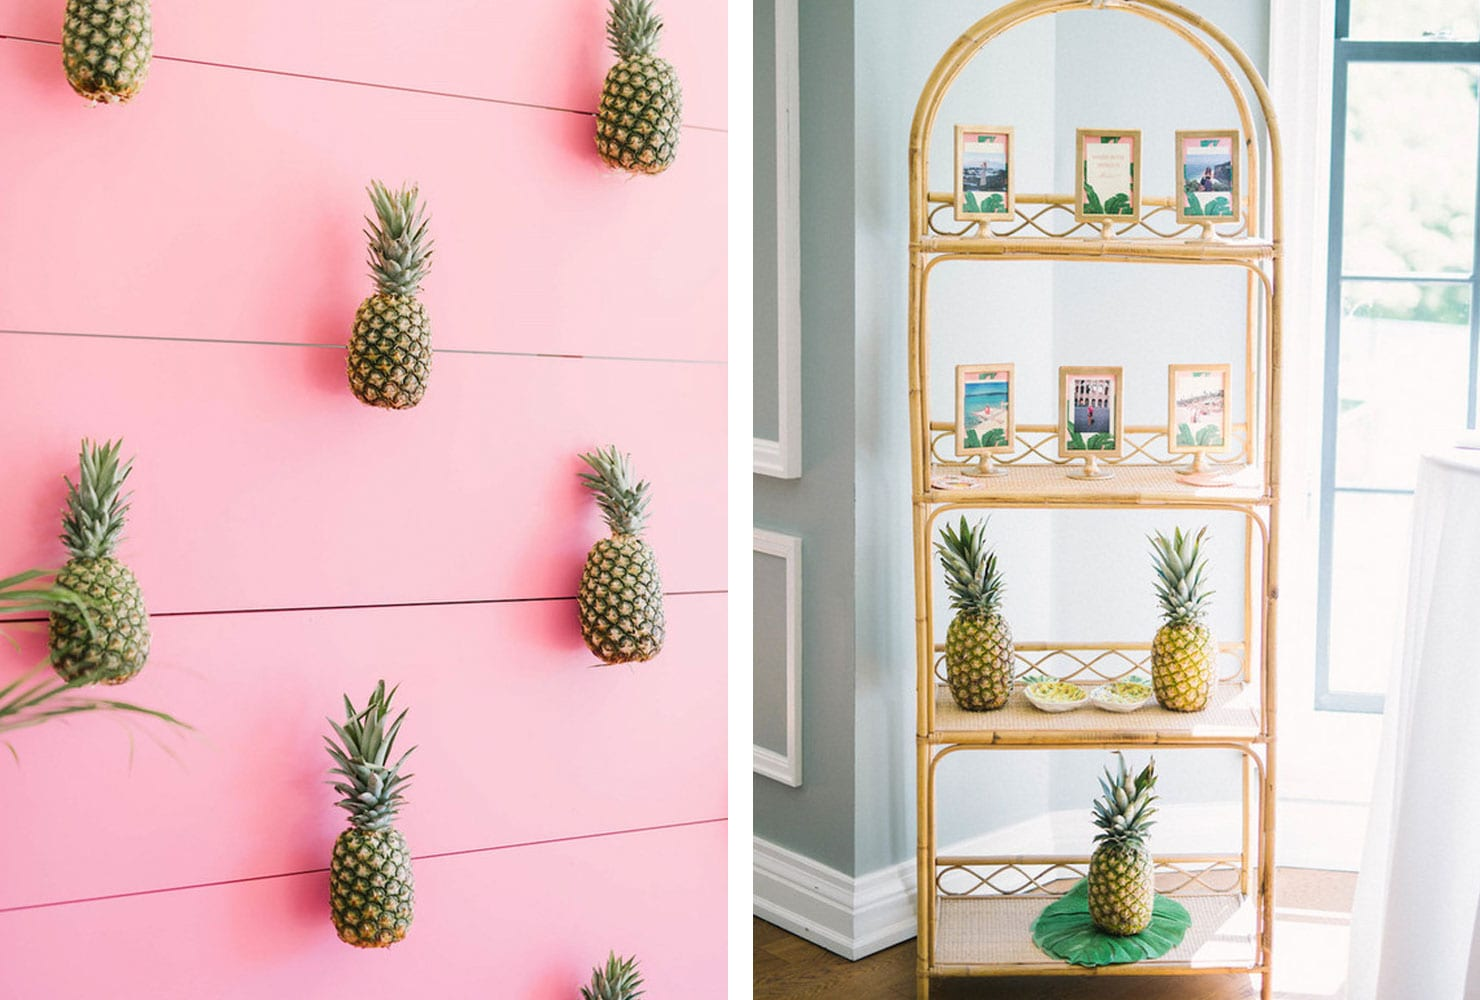 Pineapples against a pink wall and on tropical bookshelf